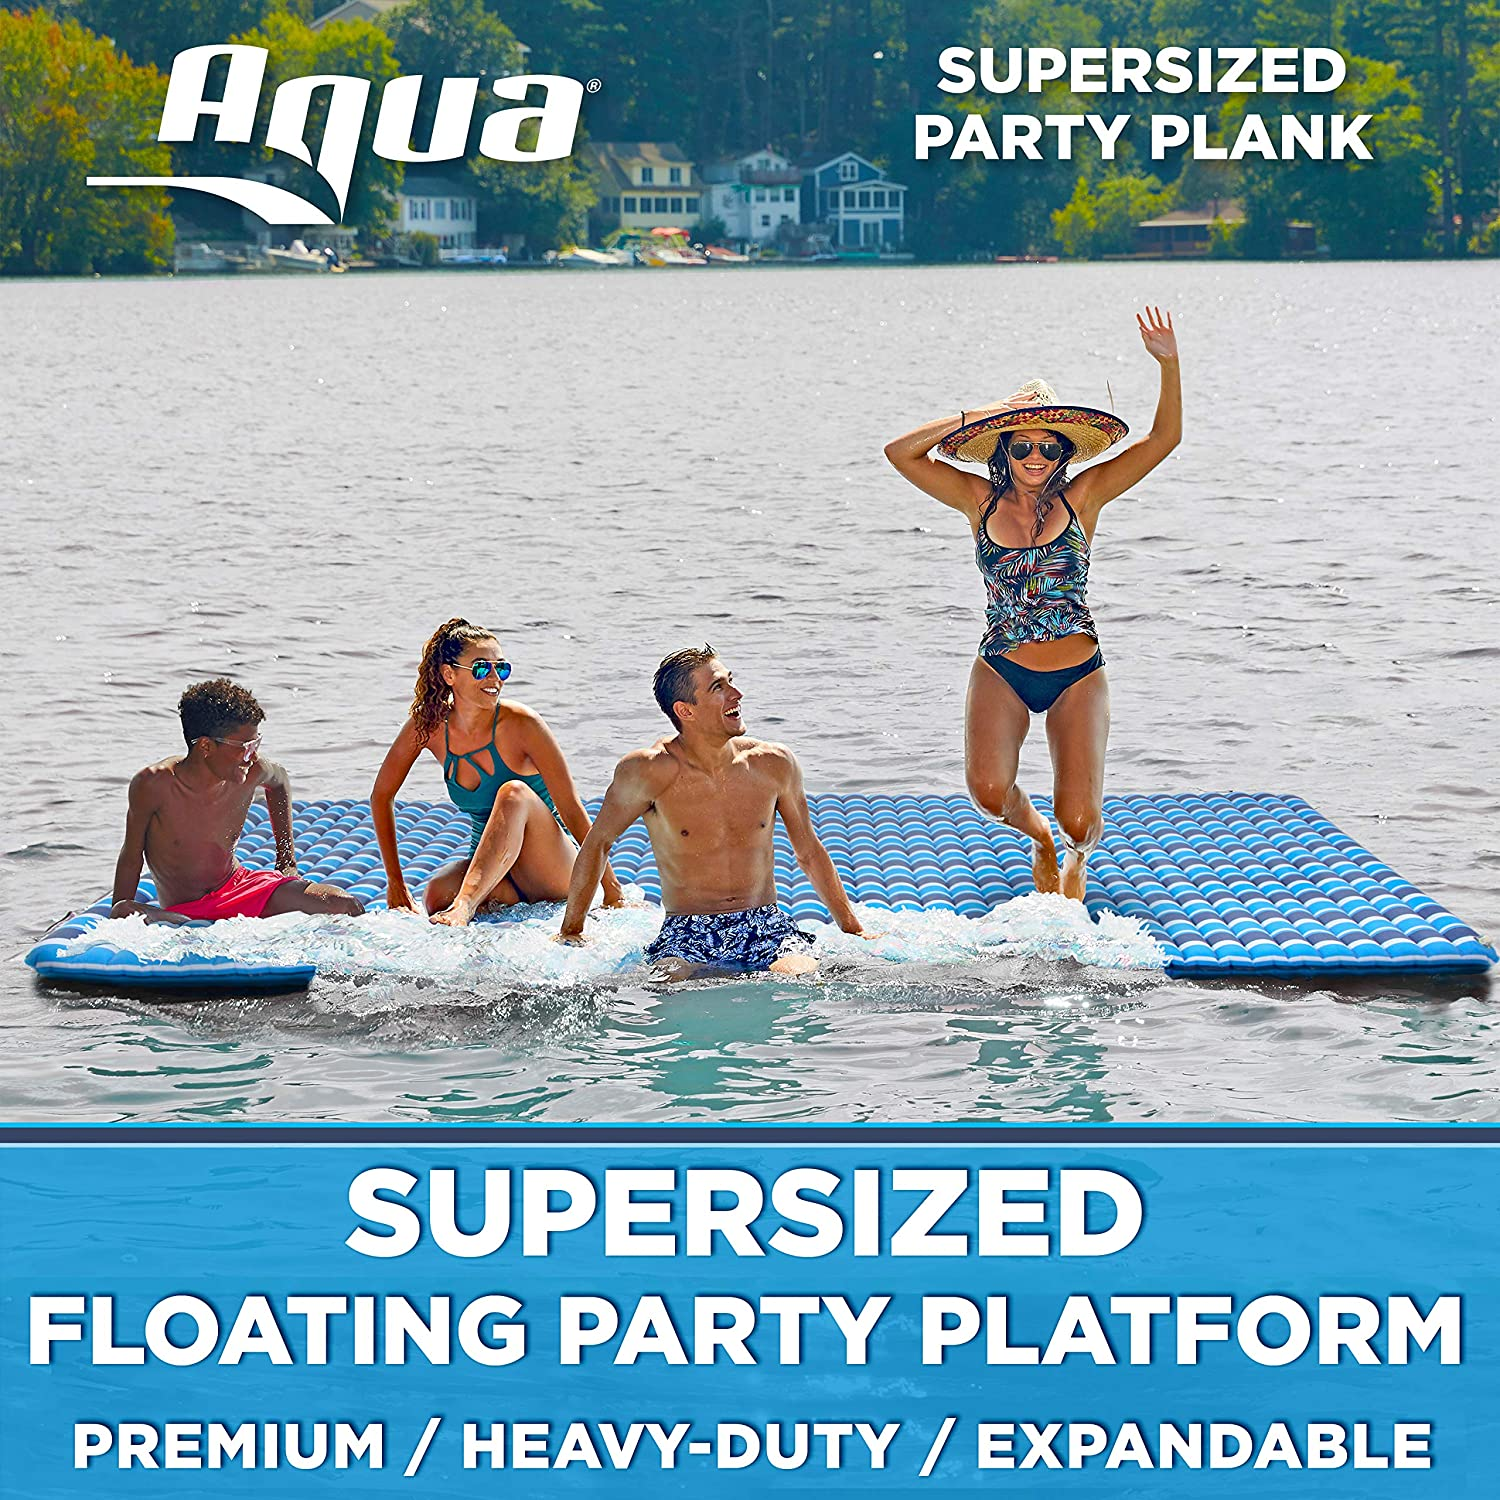 Aqua Expandable Floating Island Raft, 1,000 Lbs. Capacity, Inflatable Lake Float, Plank...